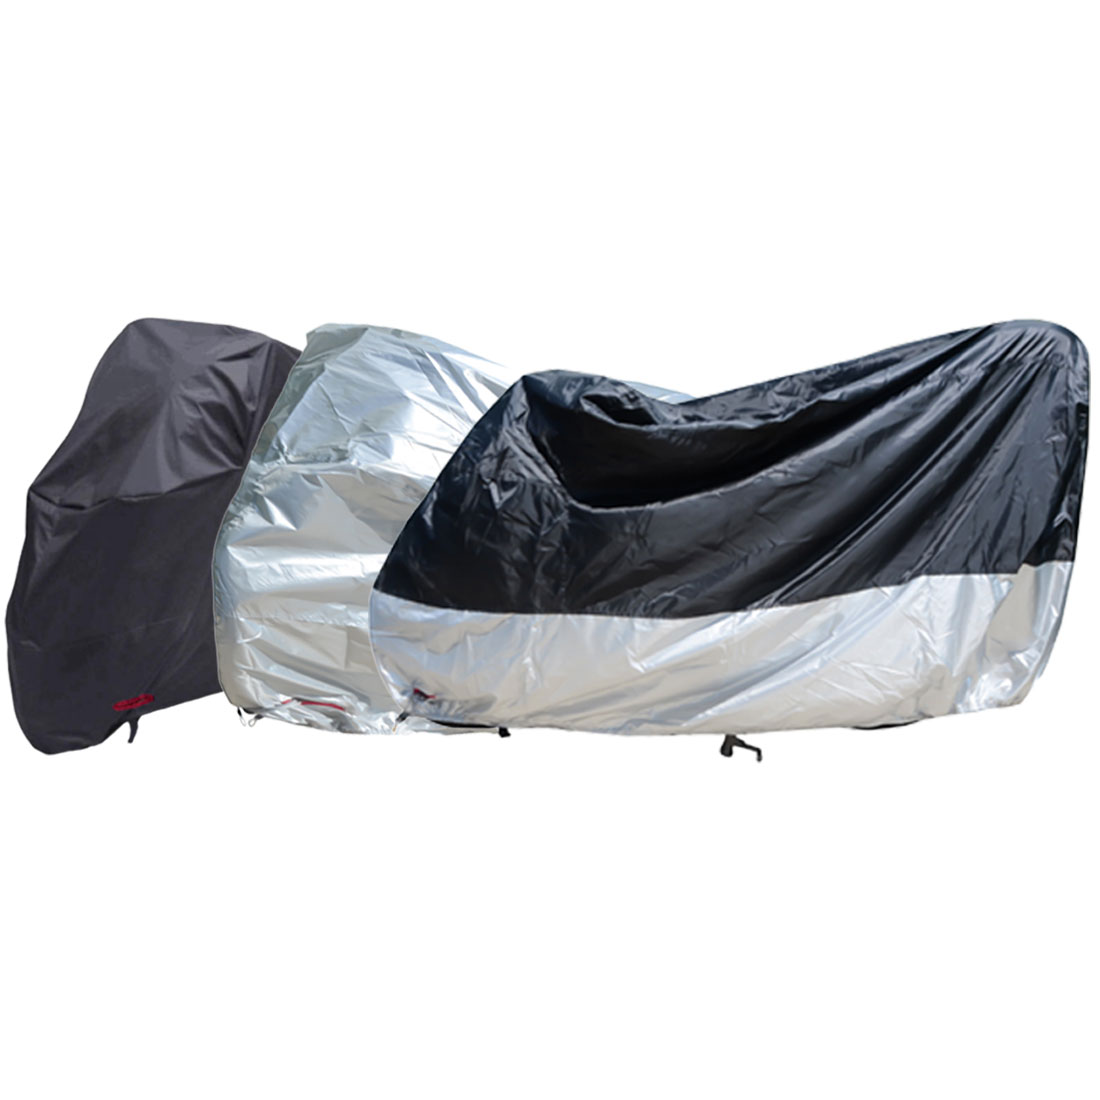 New Arrival Motorcycle cover motorcycle clothing electric car rainproof dust cover|Car Covers| |  - title=